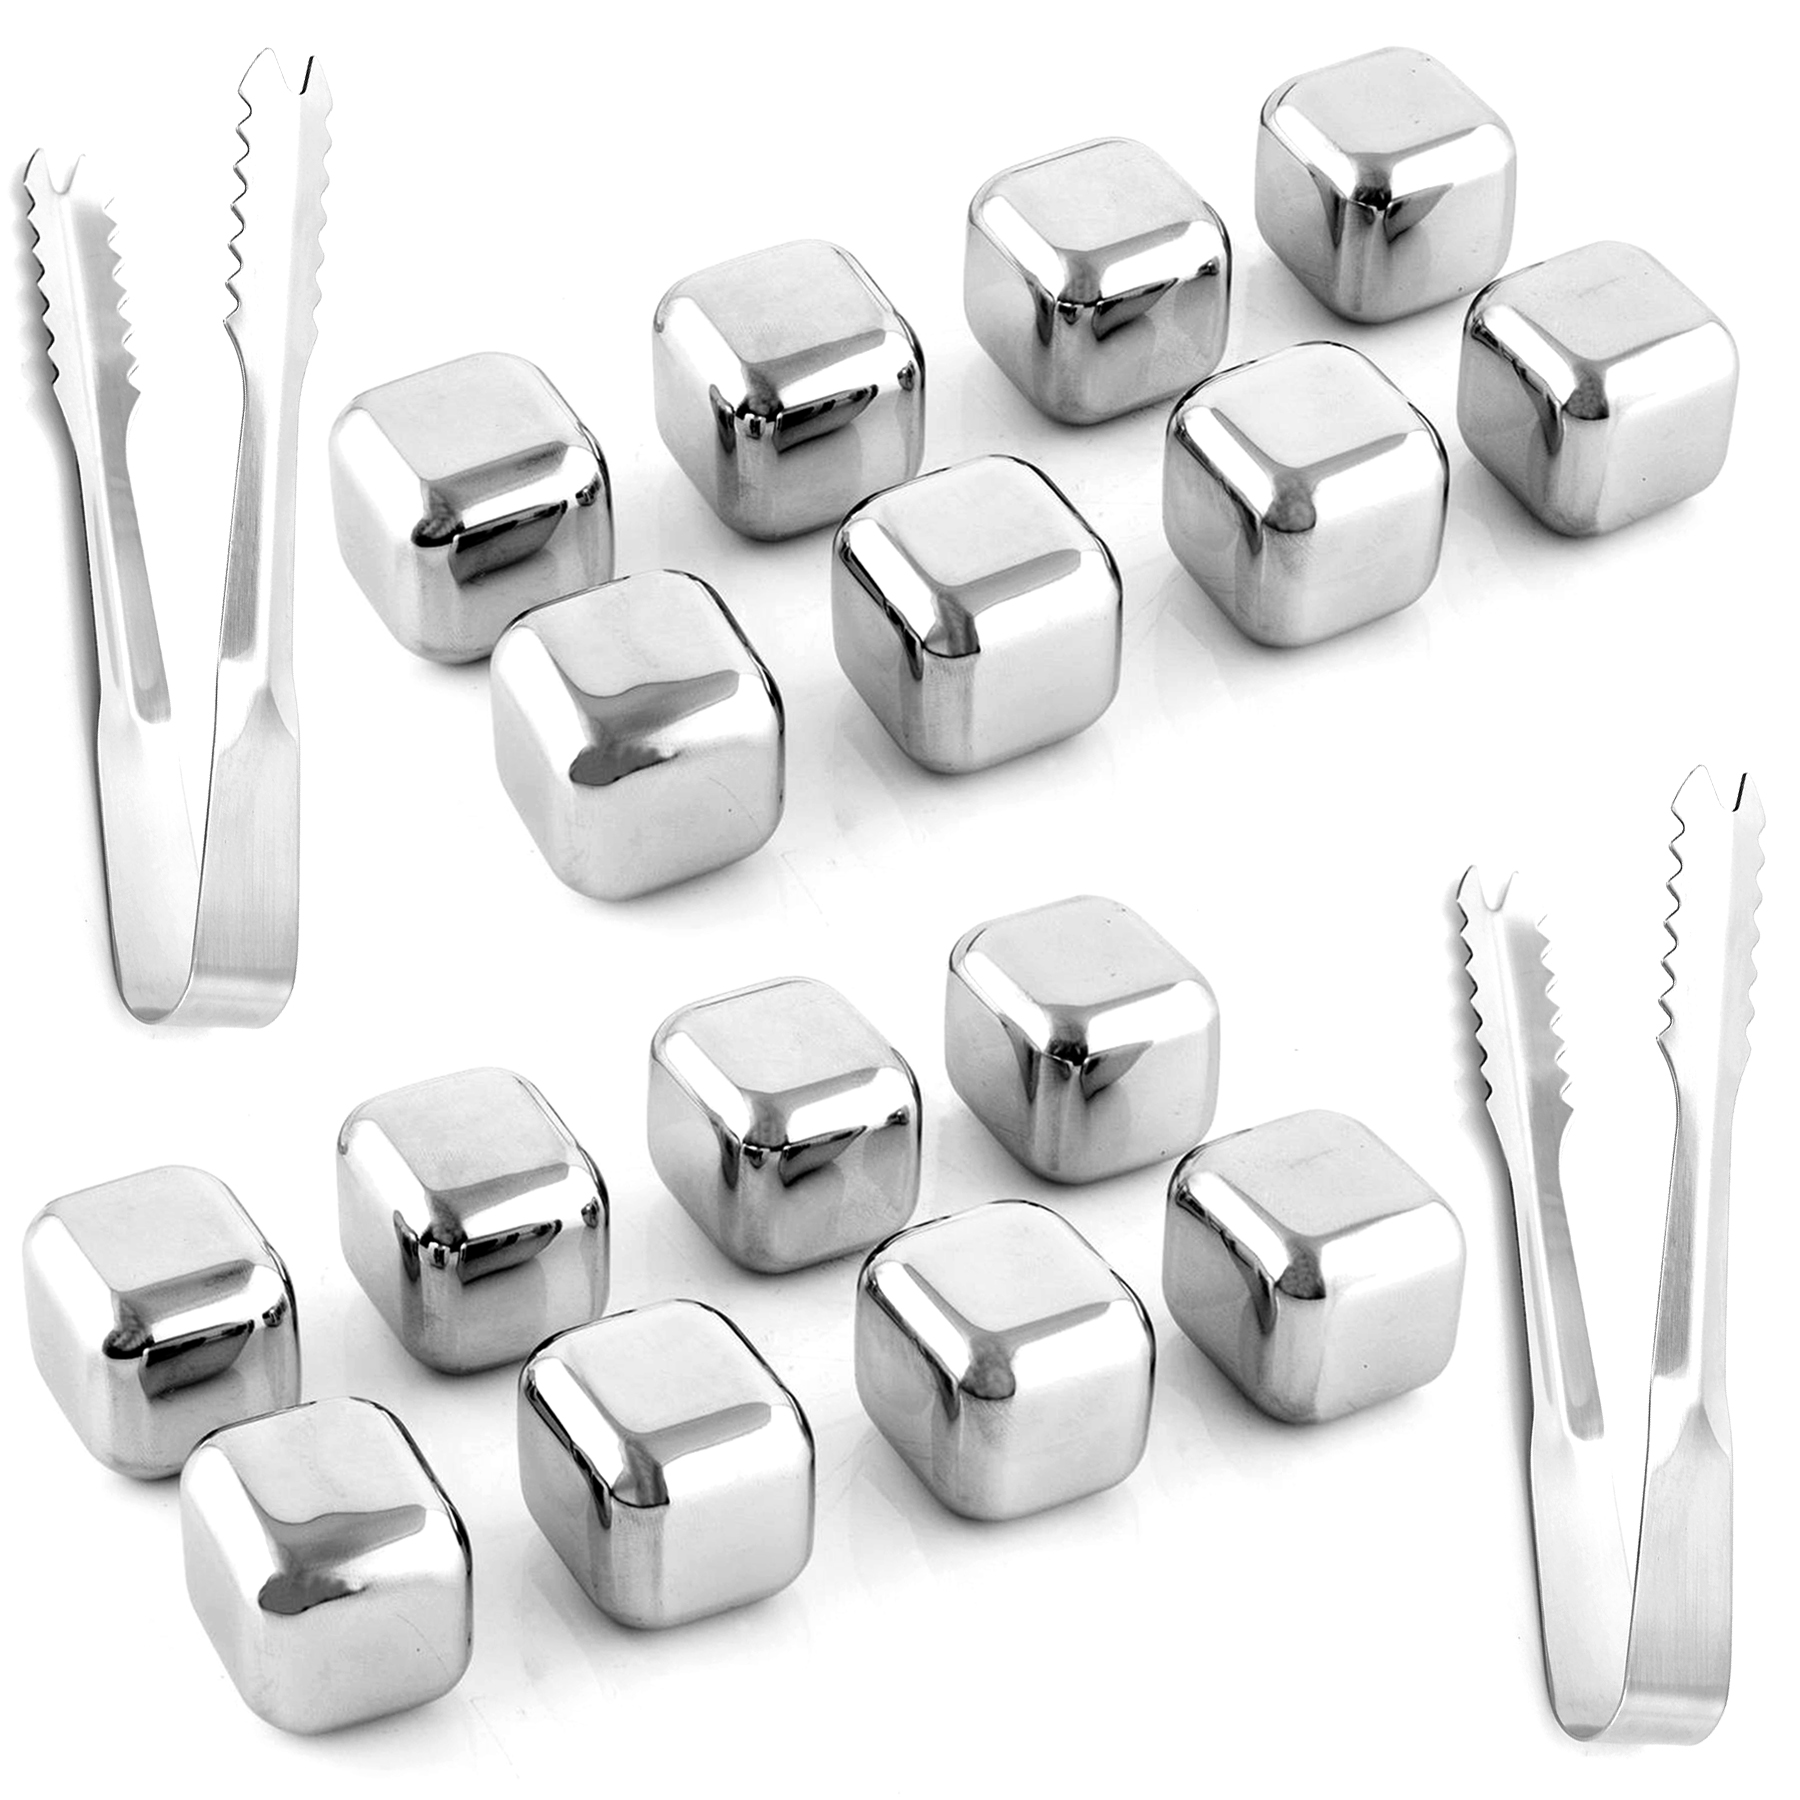 Healthpro Stainless Steel Ice Cubes Chilling Stones Rocks Reusable with Tong for Whiskey, Wine, Beverage Drinks, Set of 16 PCs